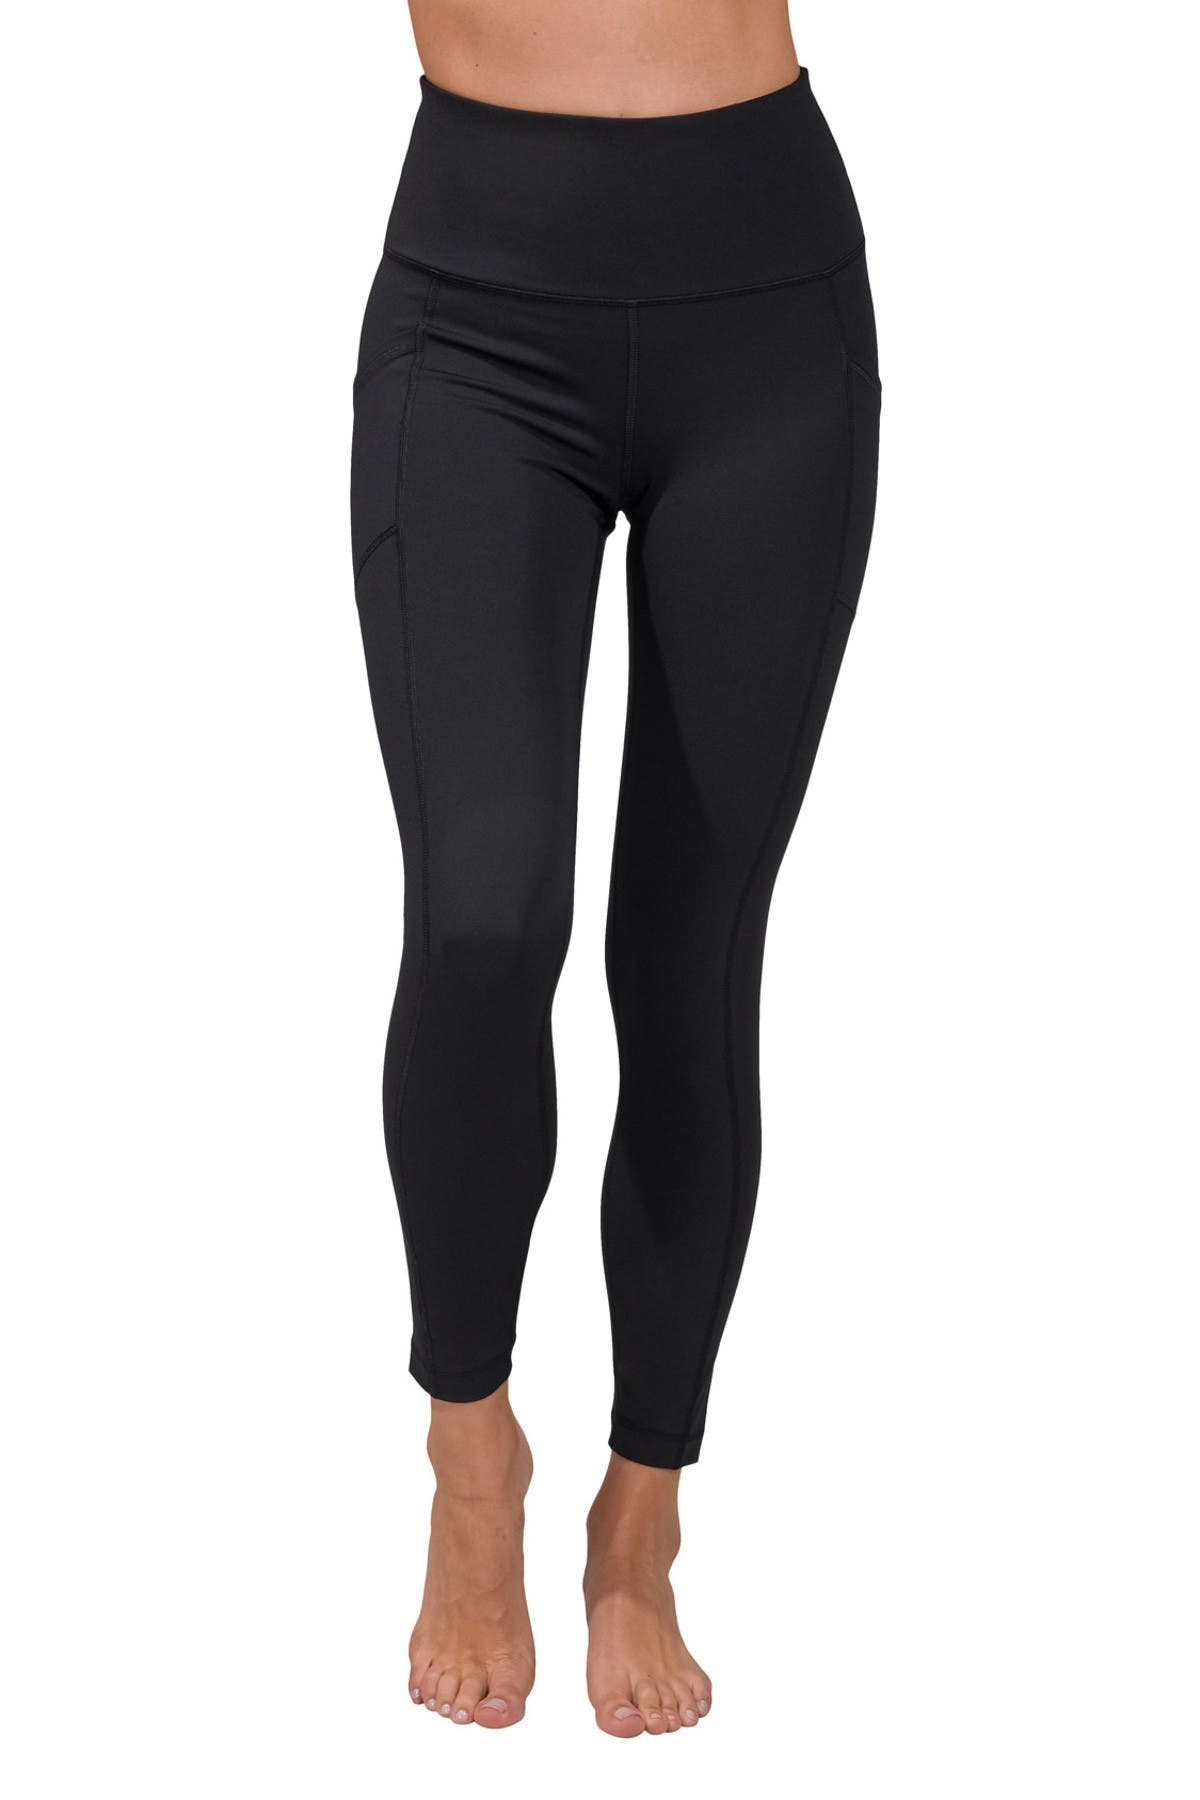 Image of 90 Degree By Reflex Wonderflex High Waist Pocket Capri Leggings